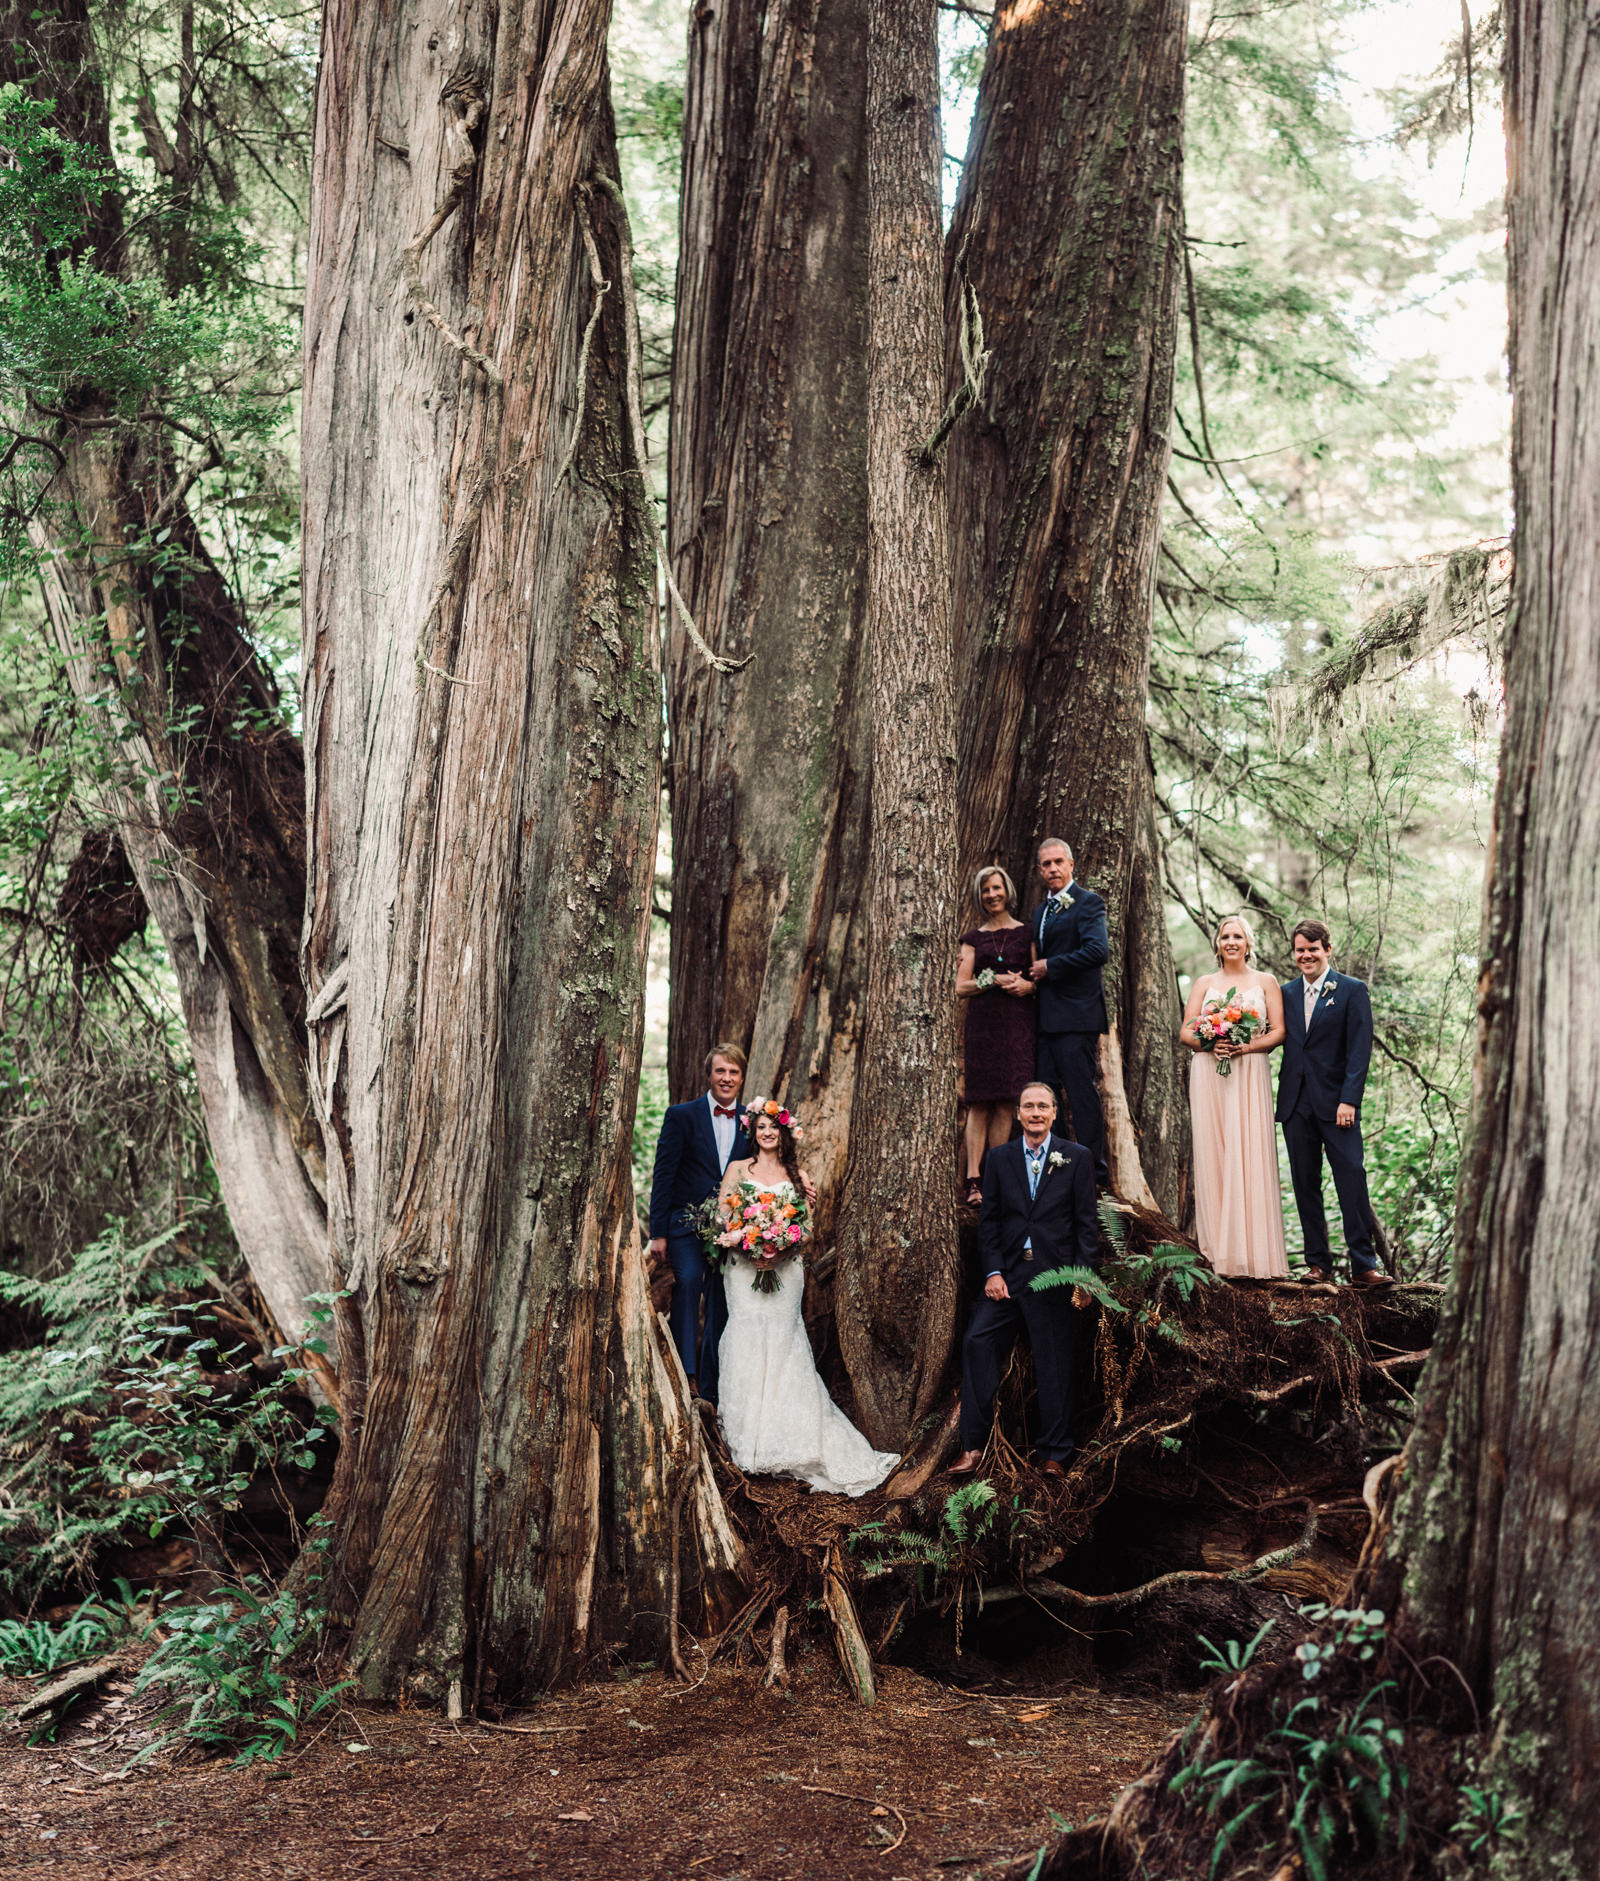 247-creative-family-portrait-at-tofino-wedding-by-best-pnw-wedding-photographer.jpg